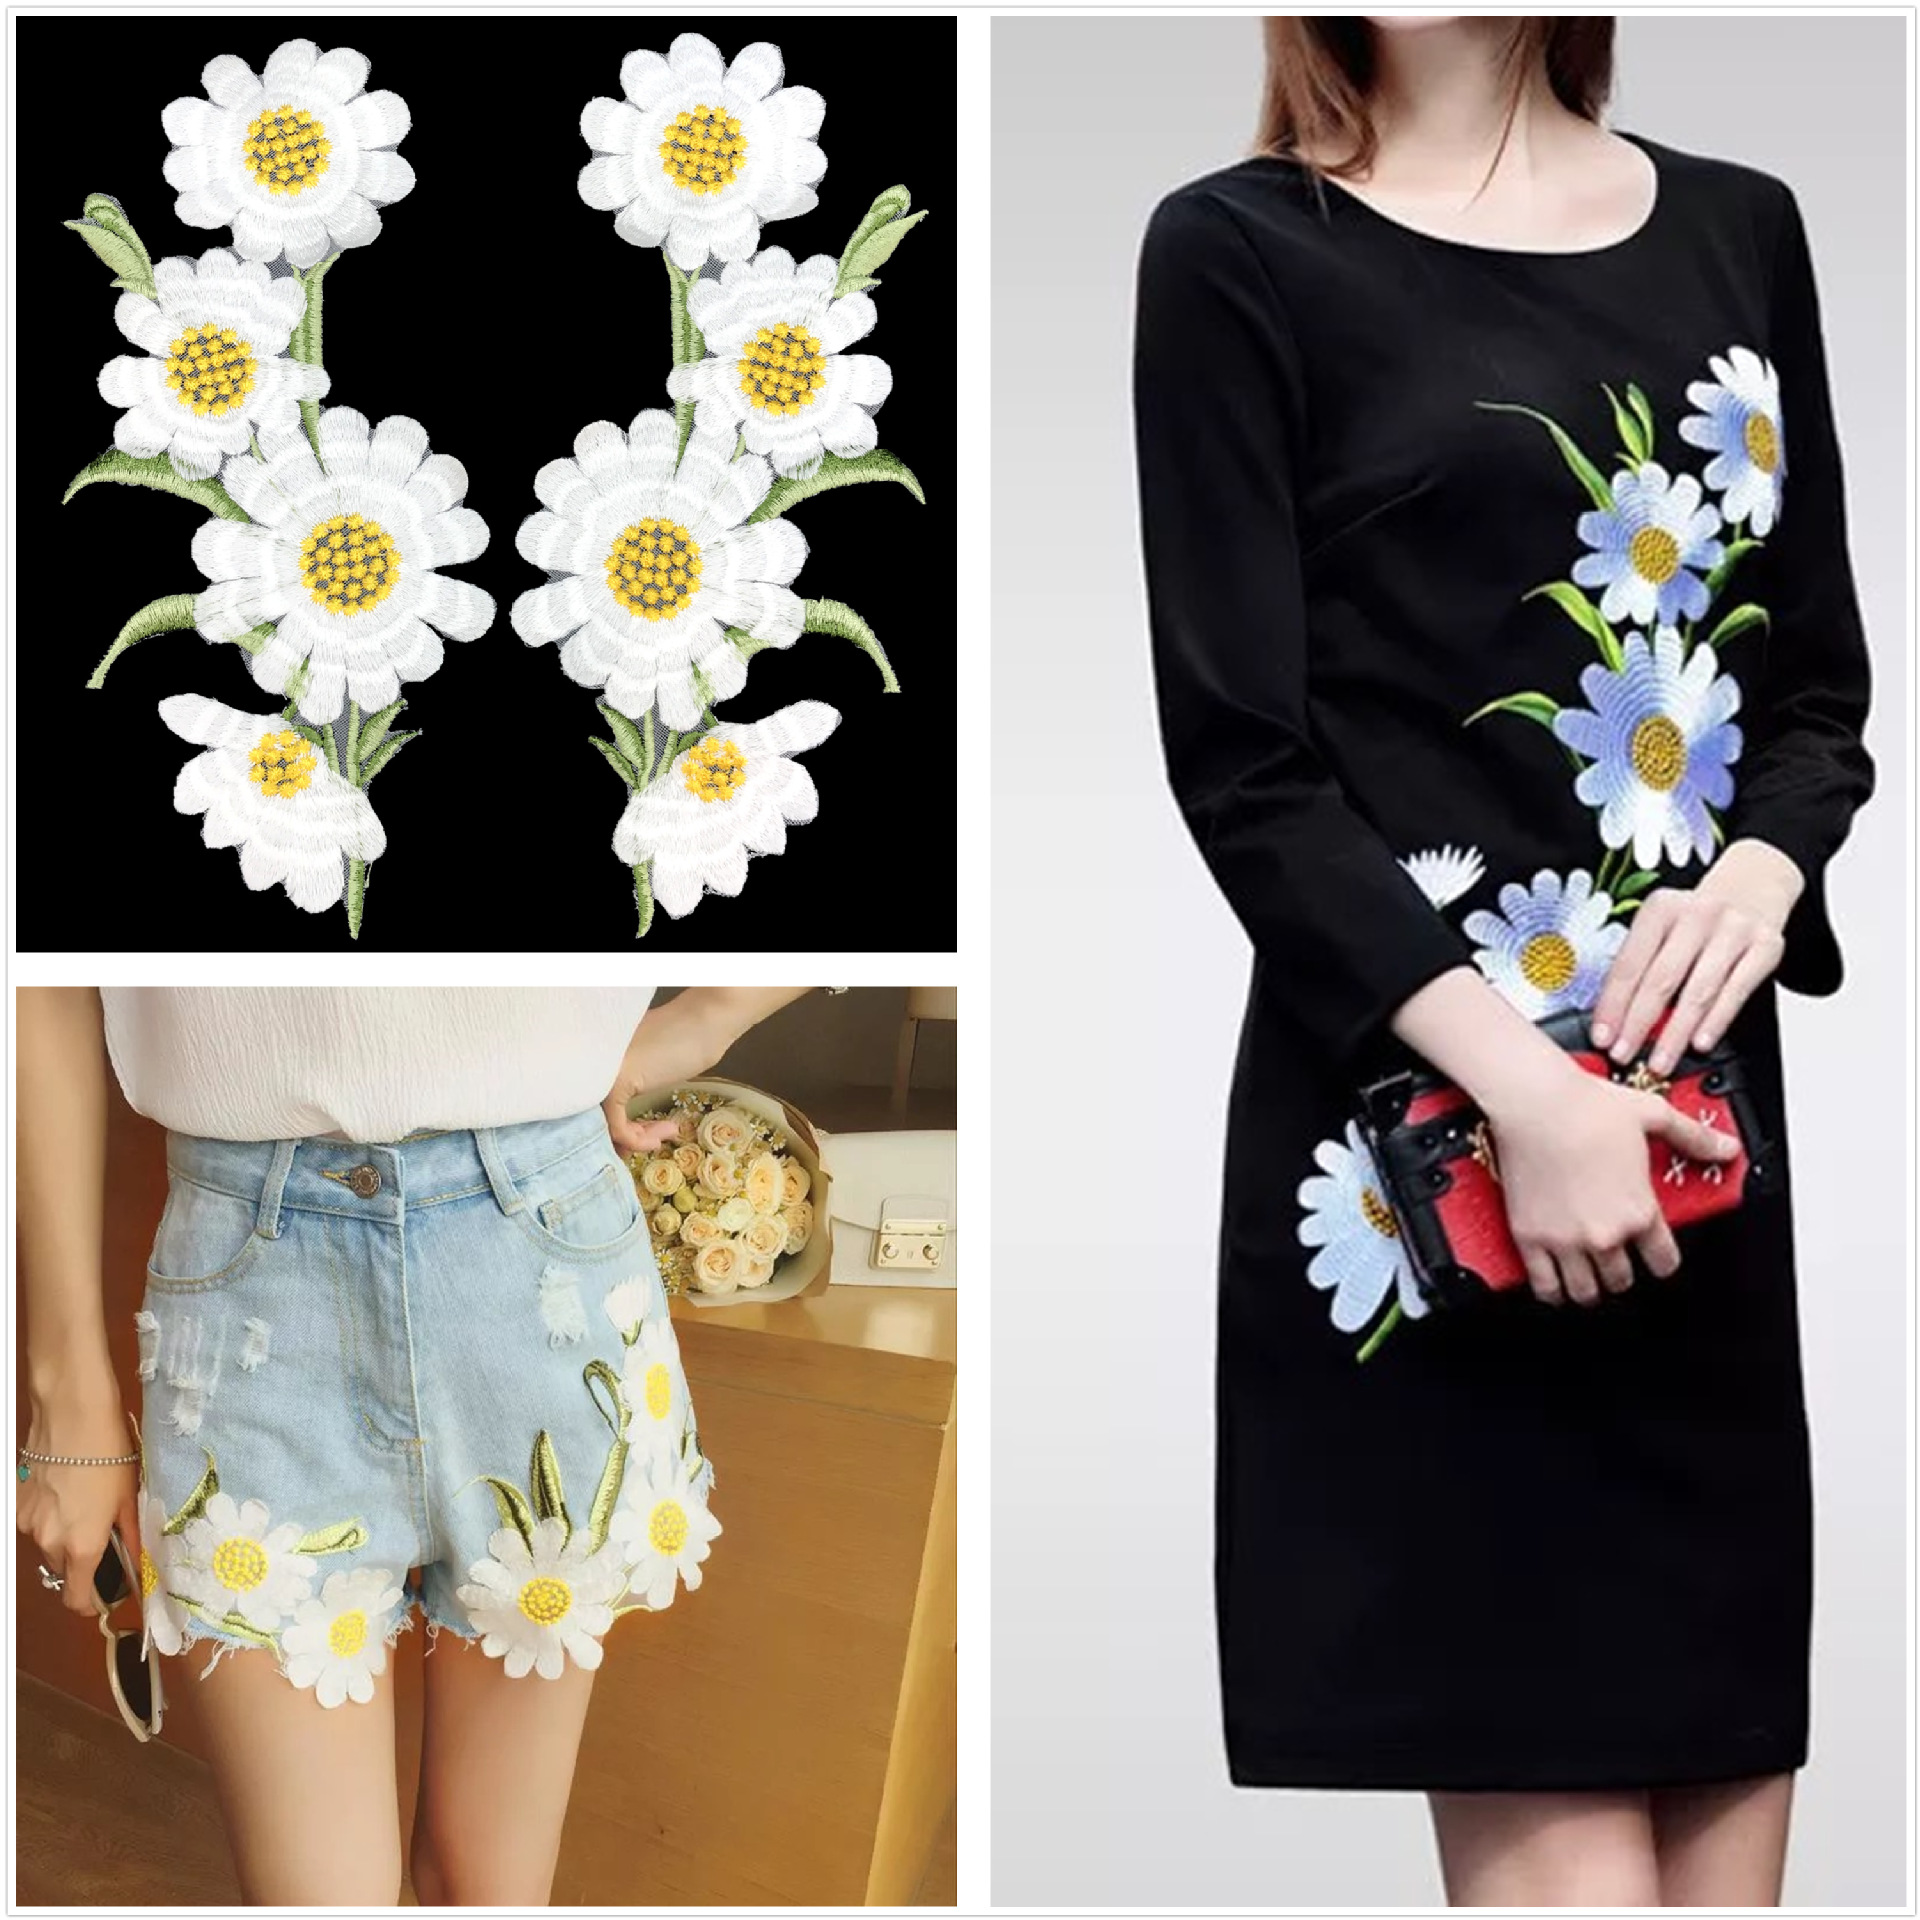 Explosive Light Yellow Daisy Patch DIY Lace Accessories Embroidery Applique